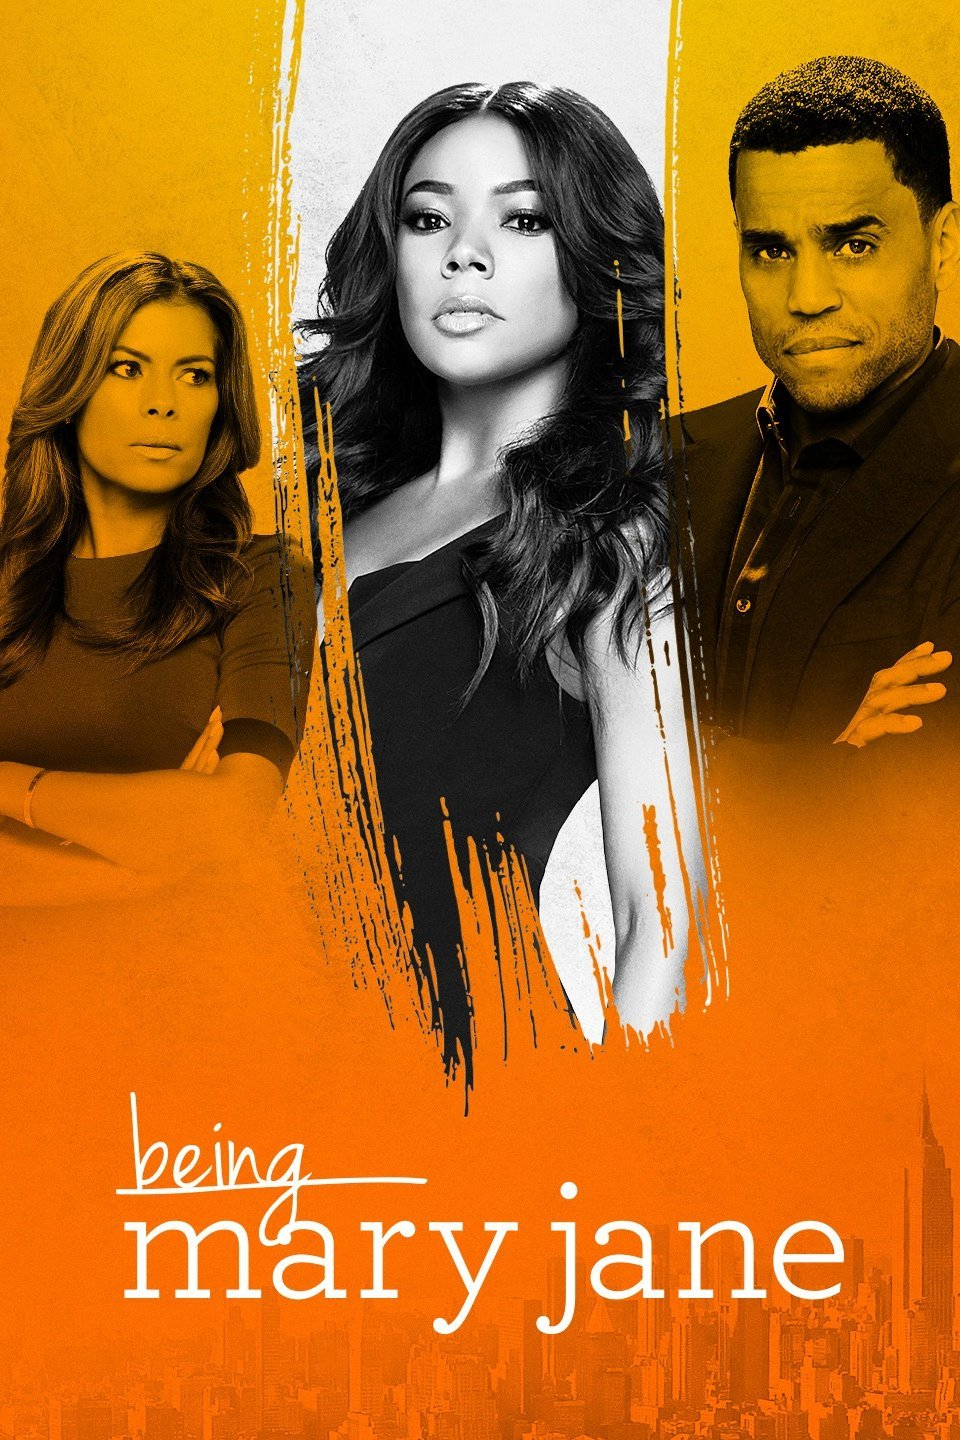 Being Mary Jane Soundtrack - Complete Song List | Tunefind